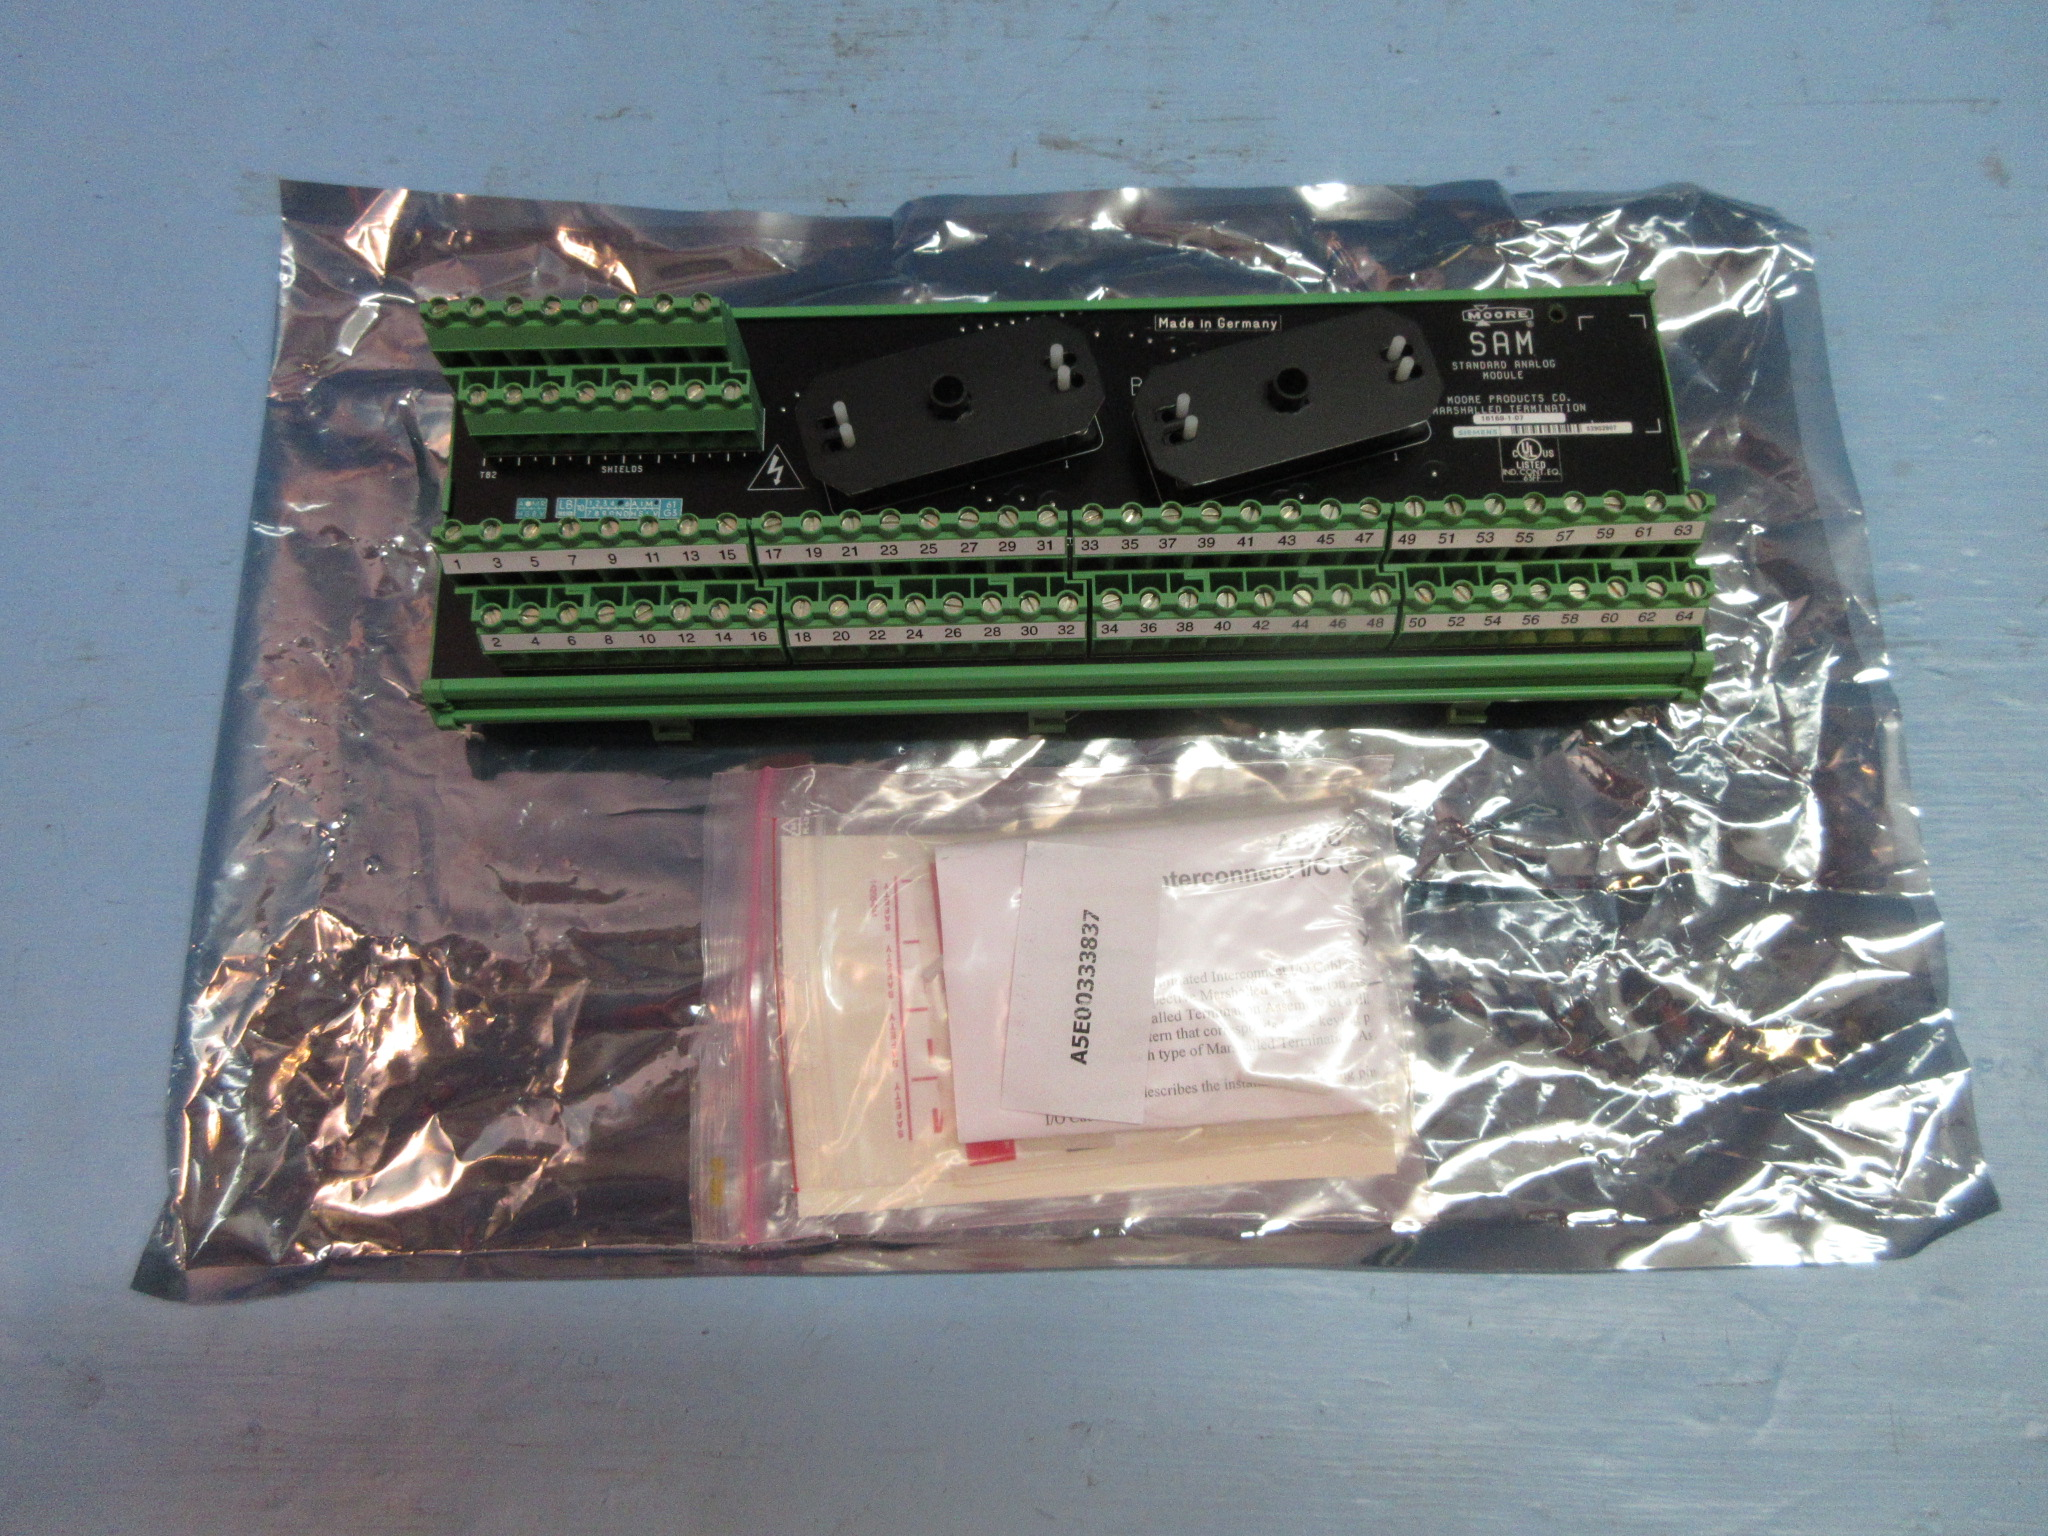 New Moore 16169-1-07 SAM Standard Analog Module Siemens PLC New Never Installed by Moore